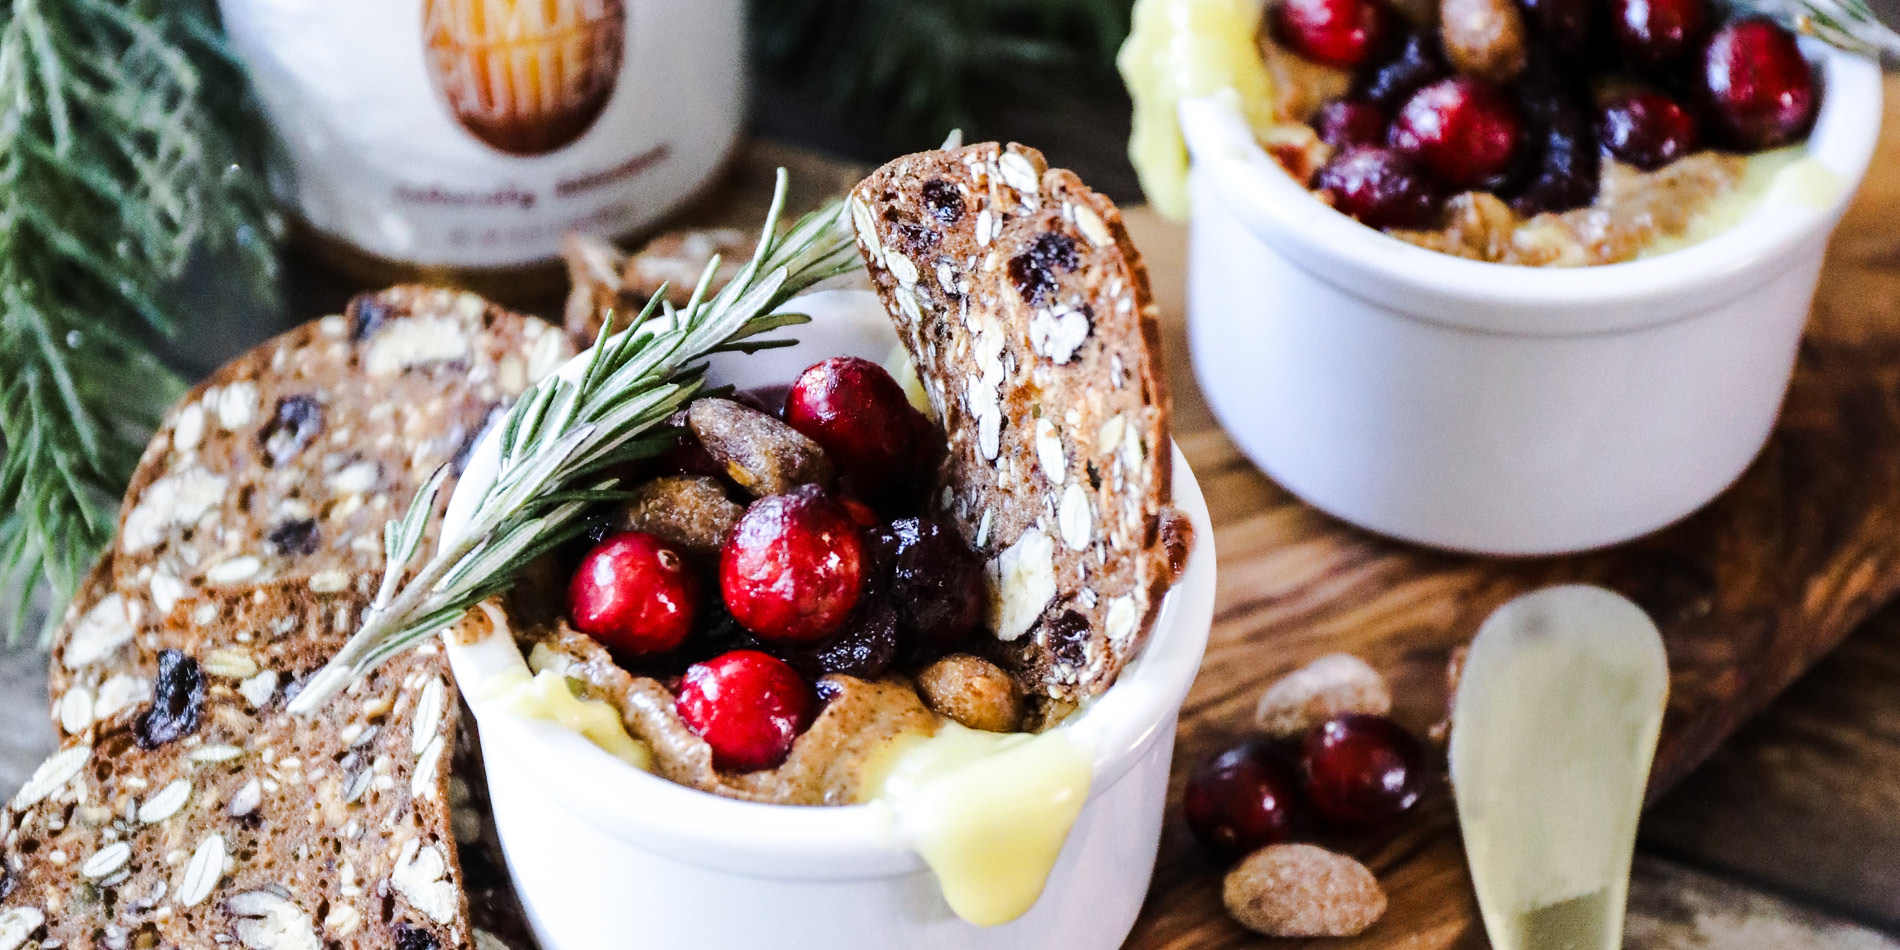 Cranberry Almond Butter Baked Brie in a small cup on a wooden serving tray with cranberries and pine on a wood background